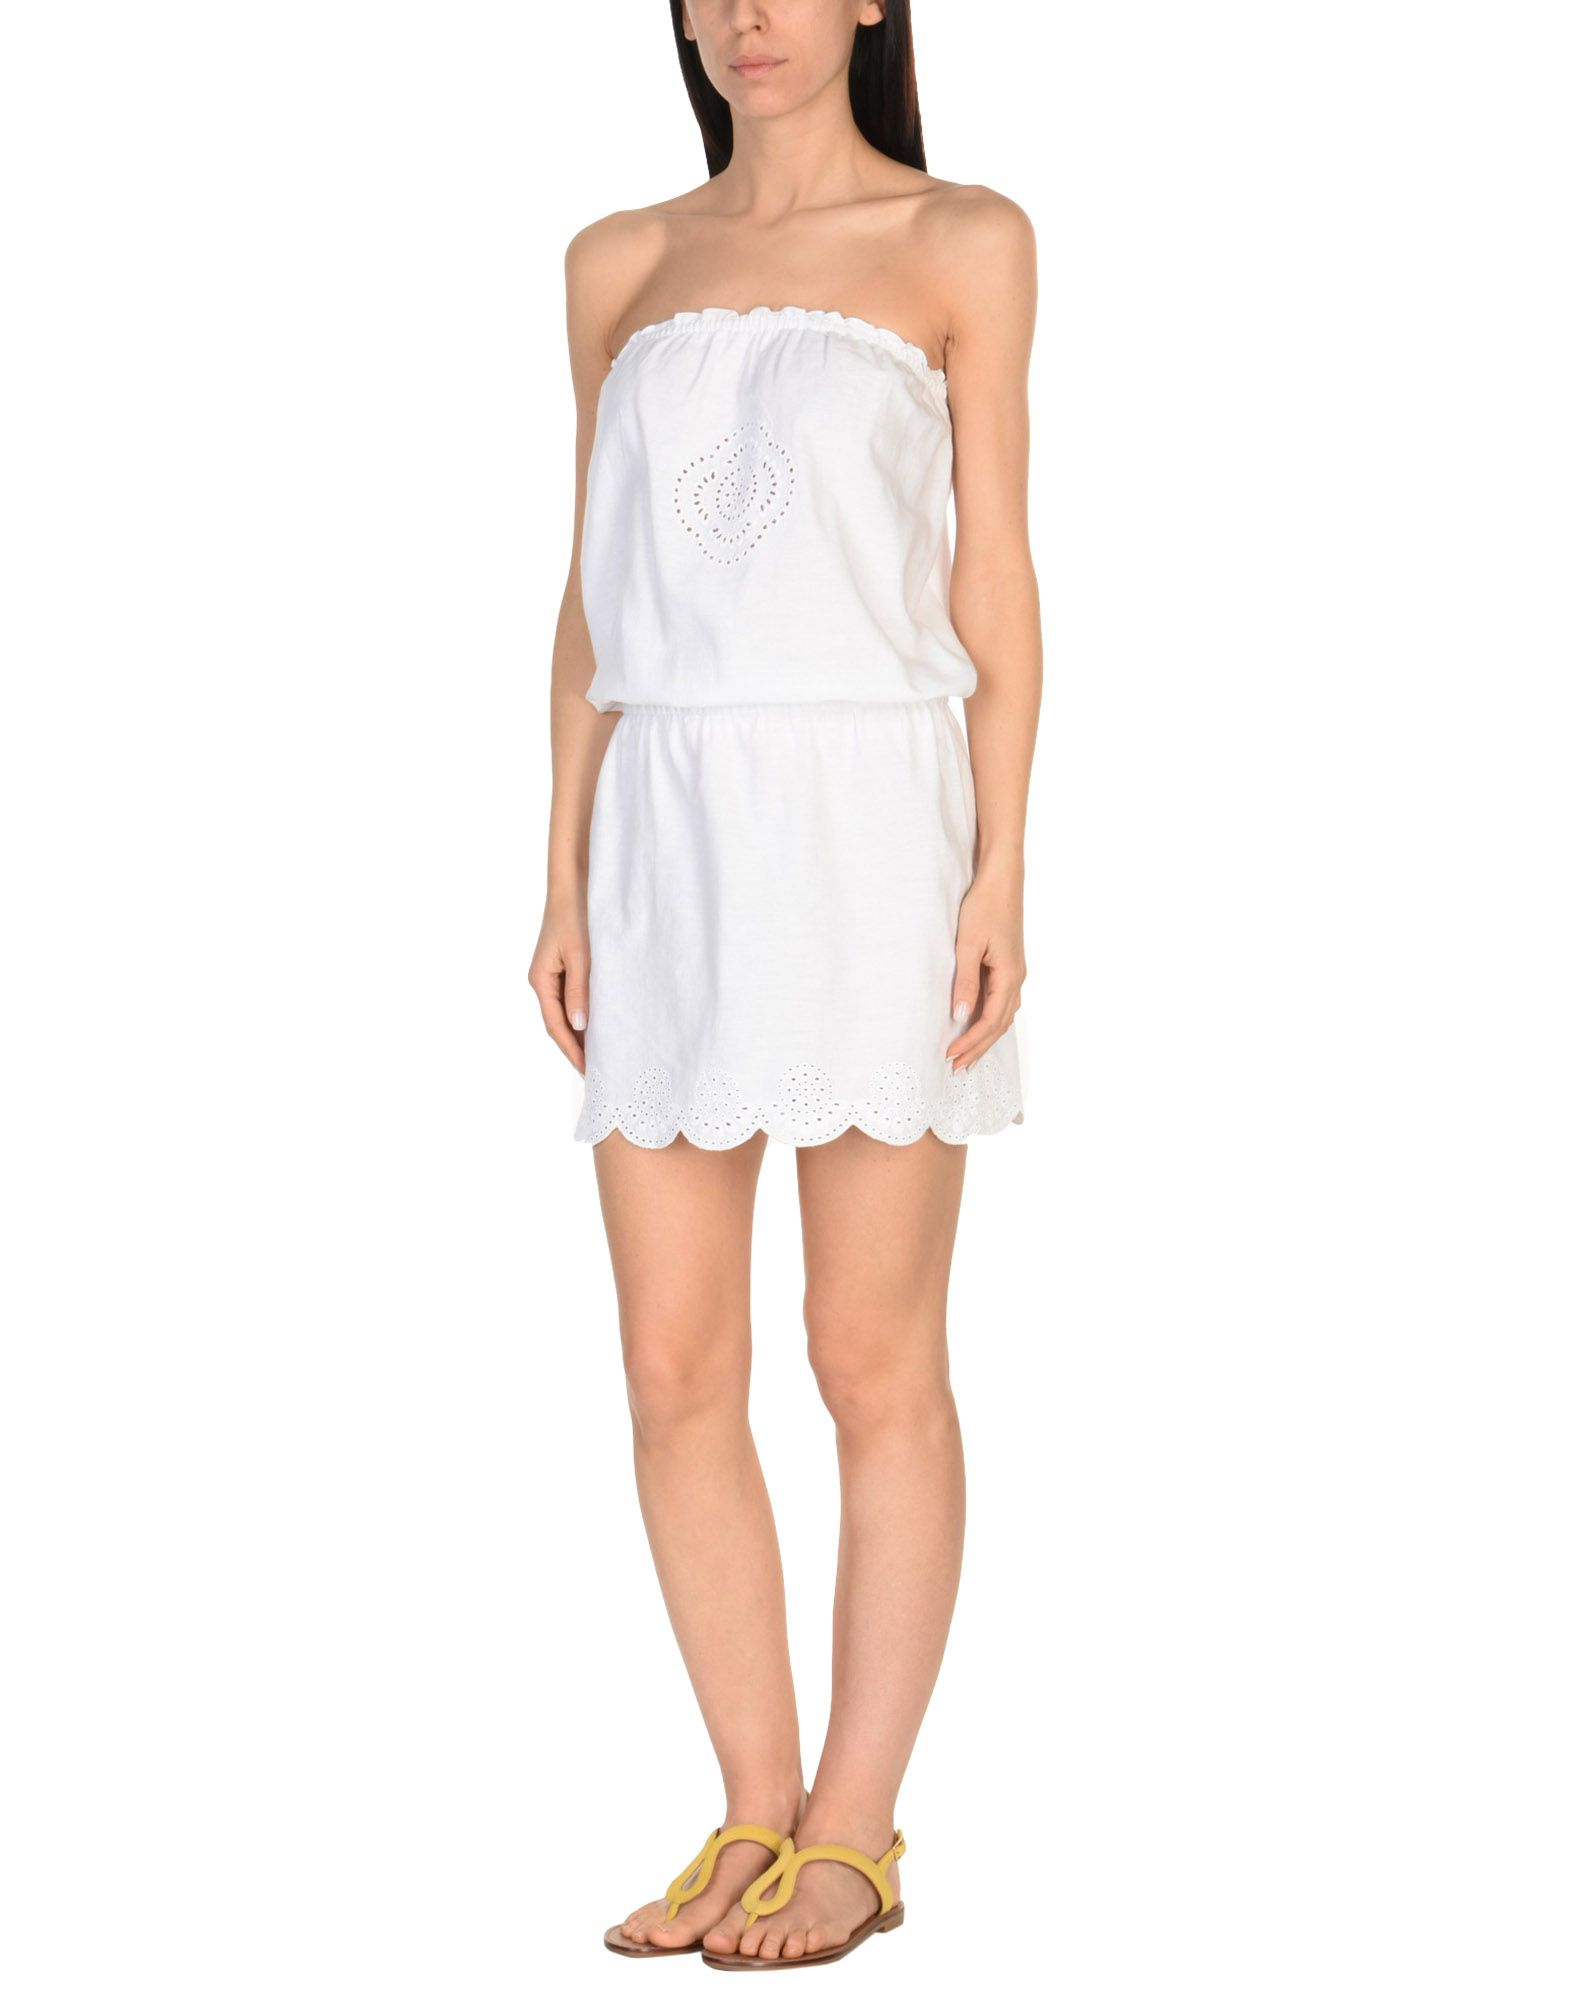 b7bb4b7ac0 Heidi Klein Cover-Ups - Women Heidi Klein Cover-Ups online on YOOX ...